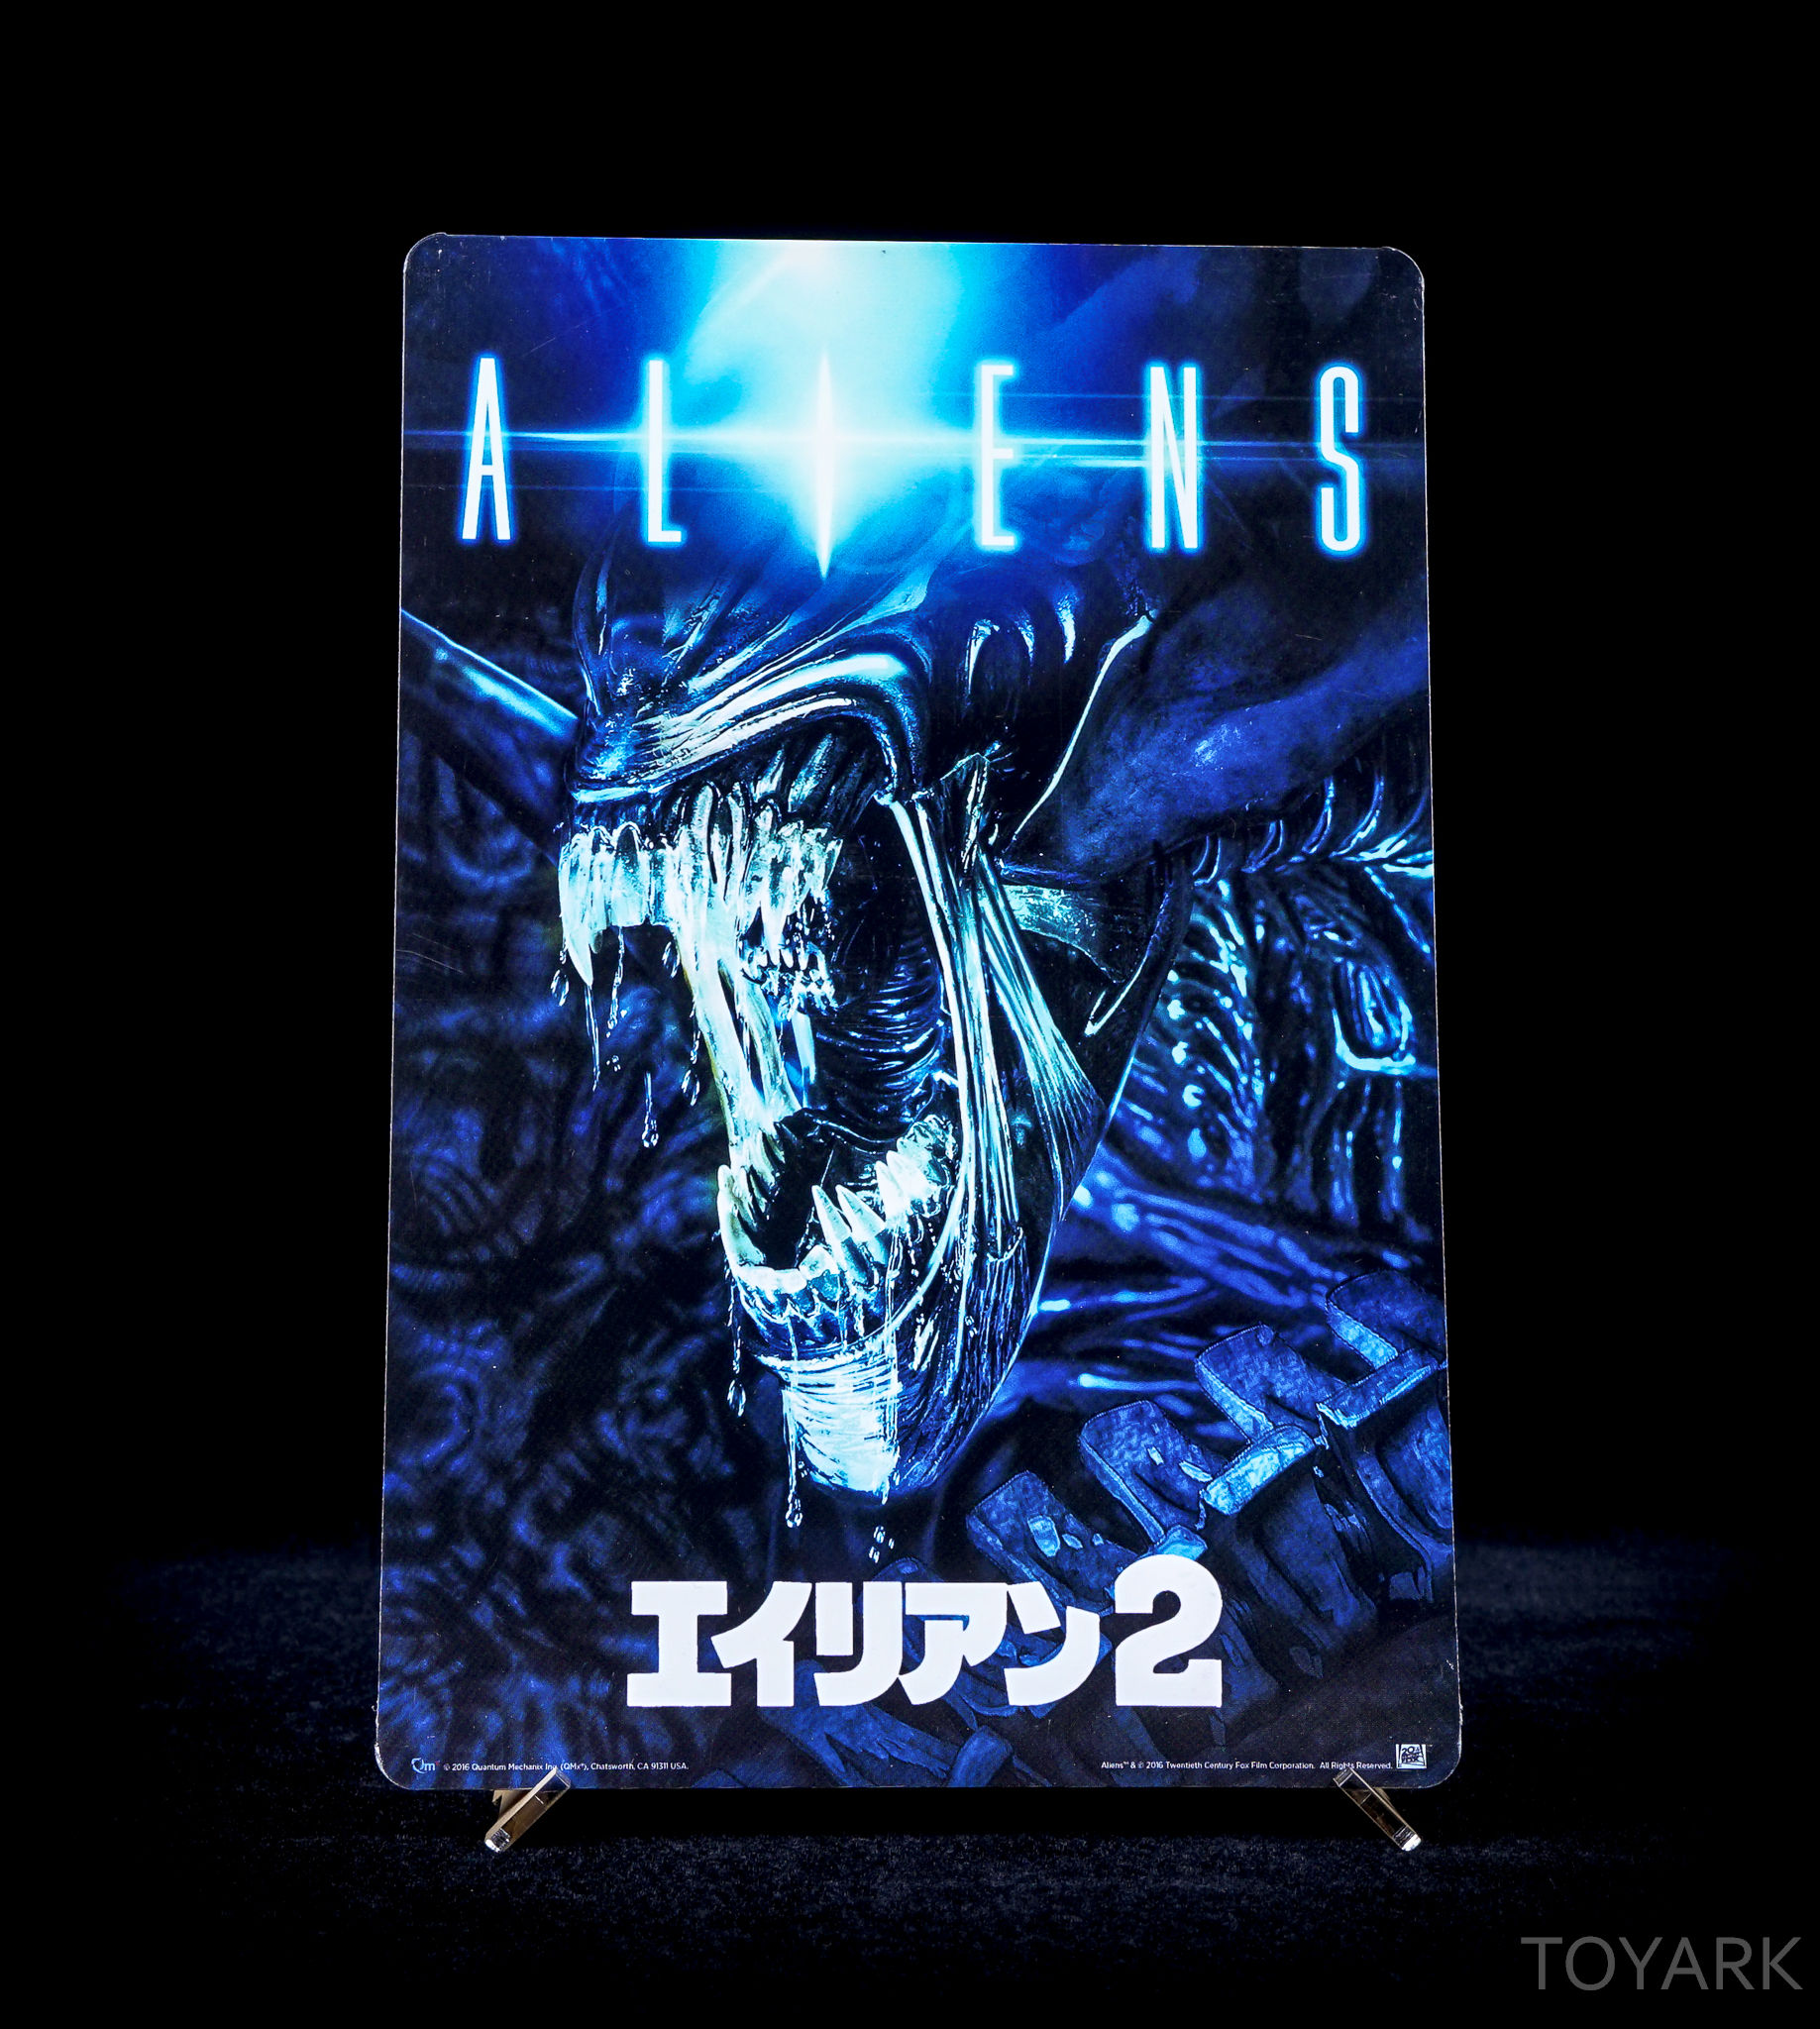 http://news.toyark.com/wp-content/uploads/sites/4/2016/05/Aliens-30th-Anniversary-Lootcrate-012.jpg